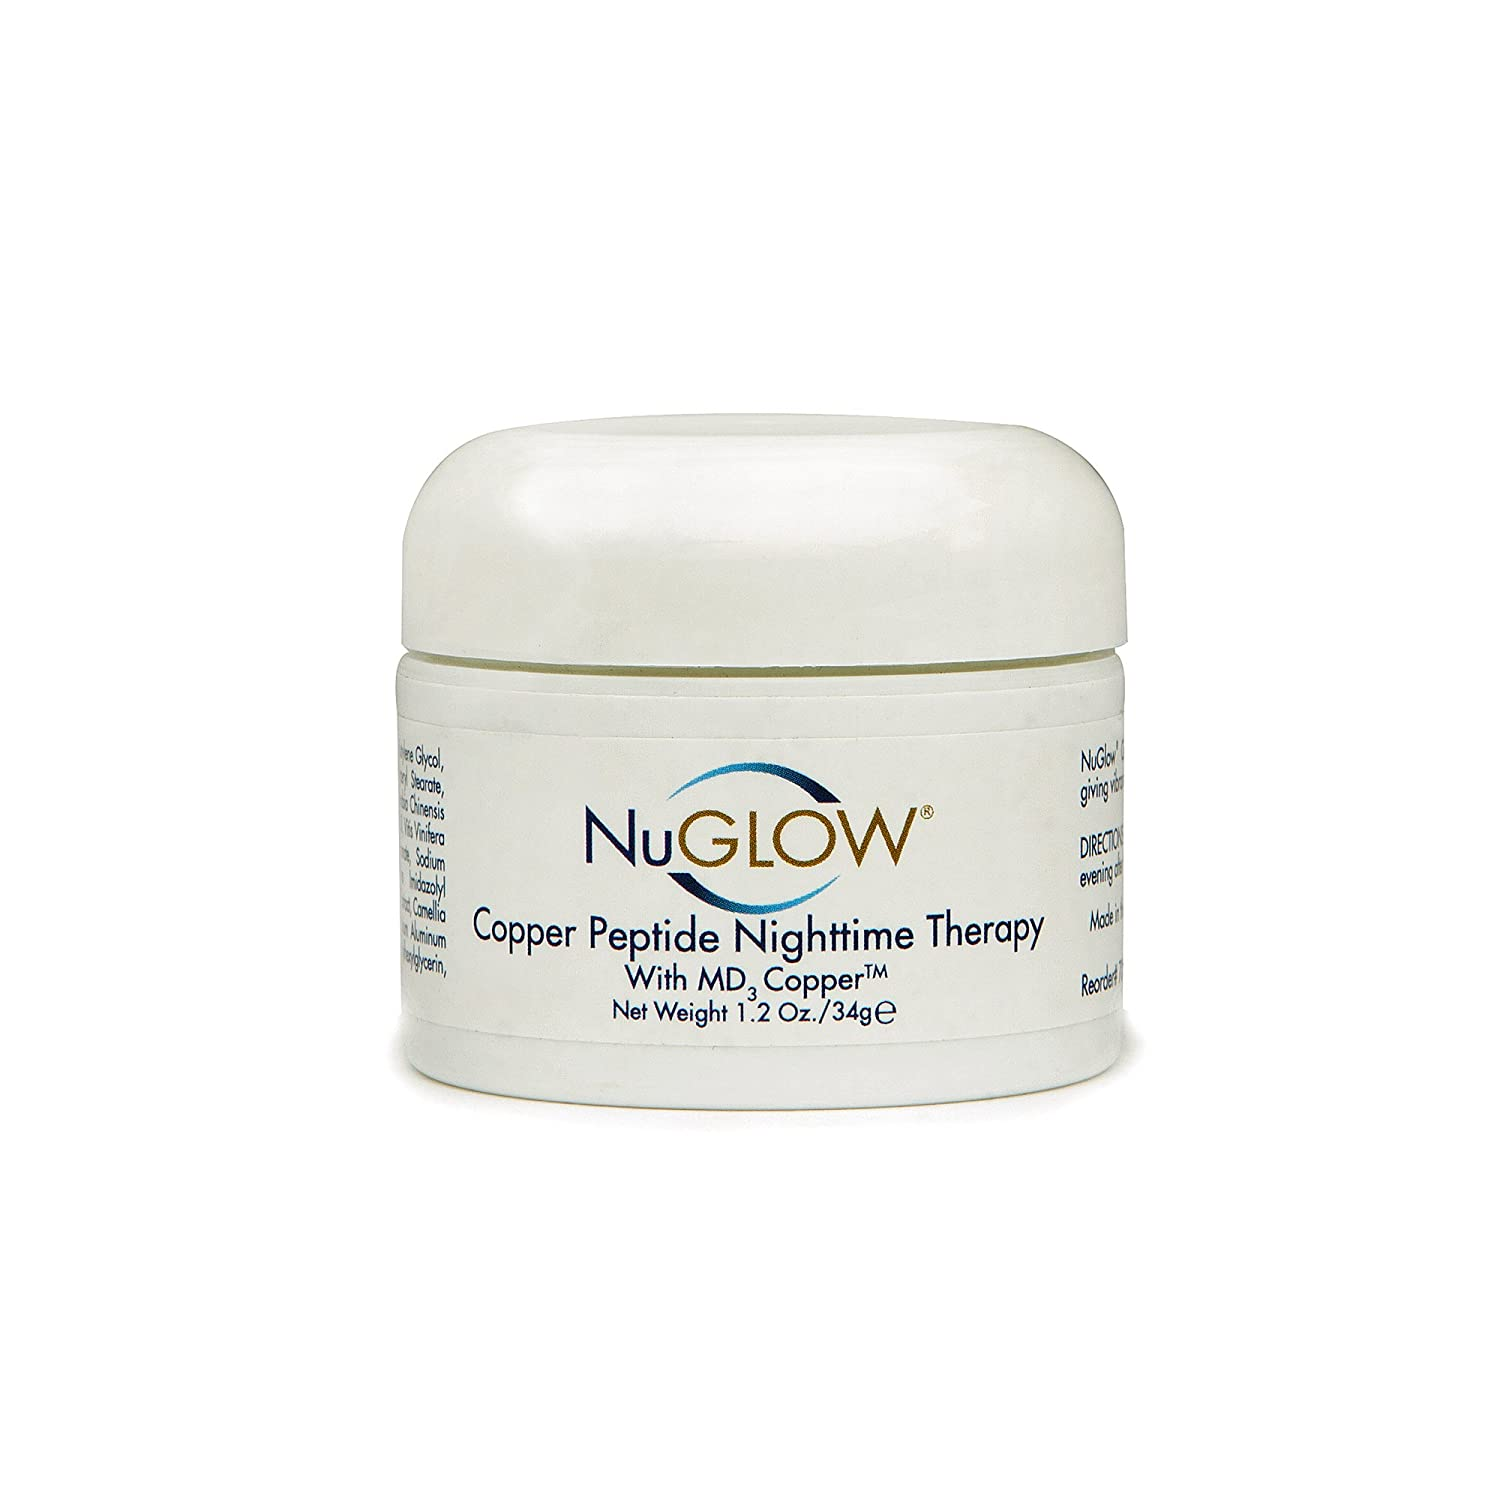 NuGlow Copper Peptide NightTime Therapy With MD3 Copper